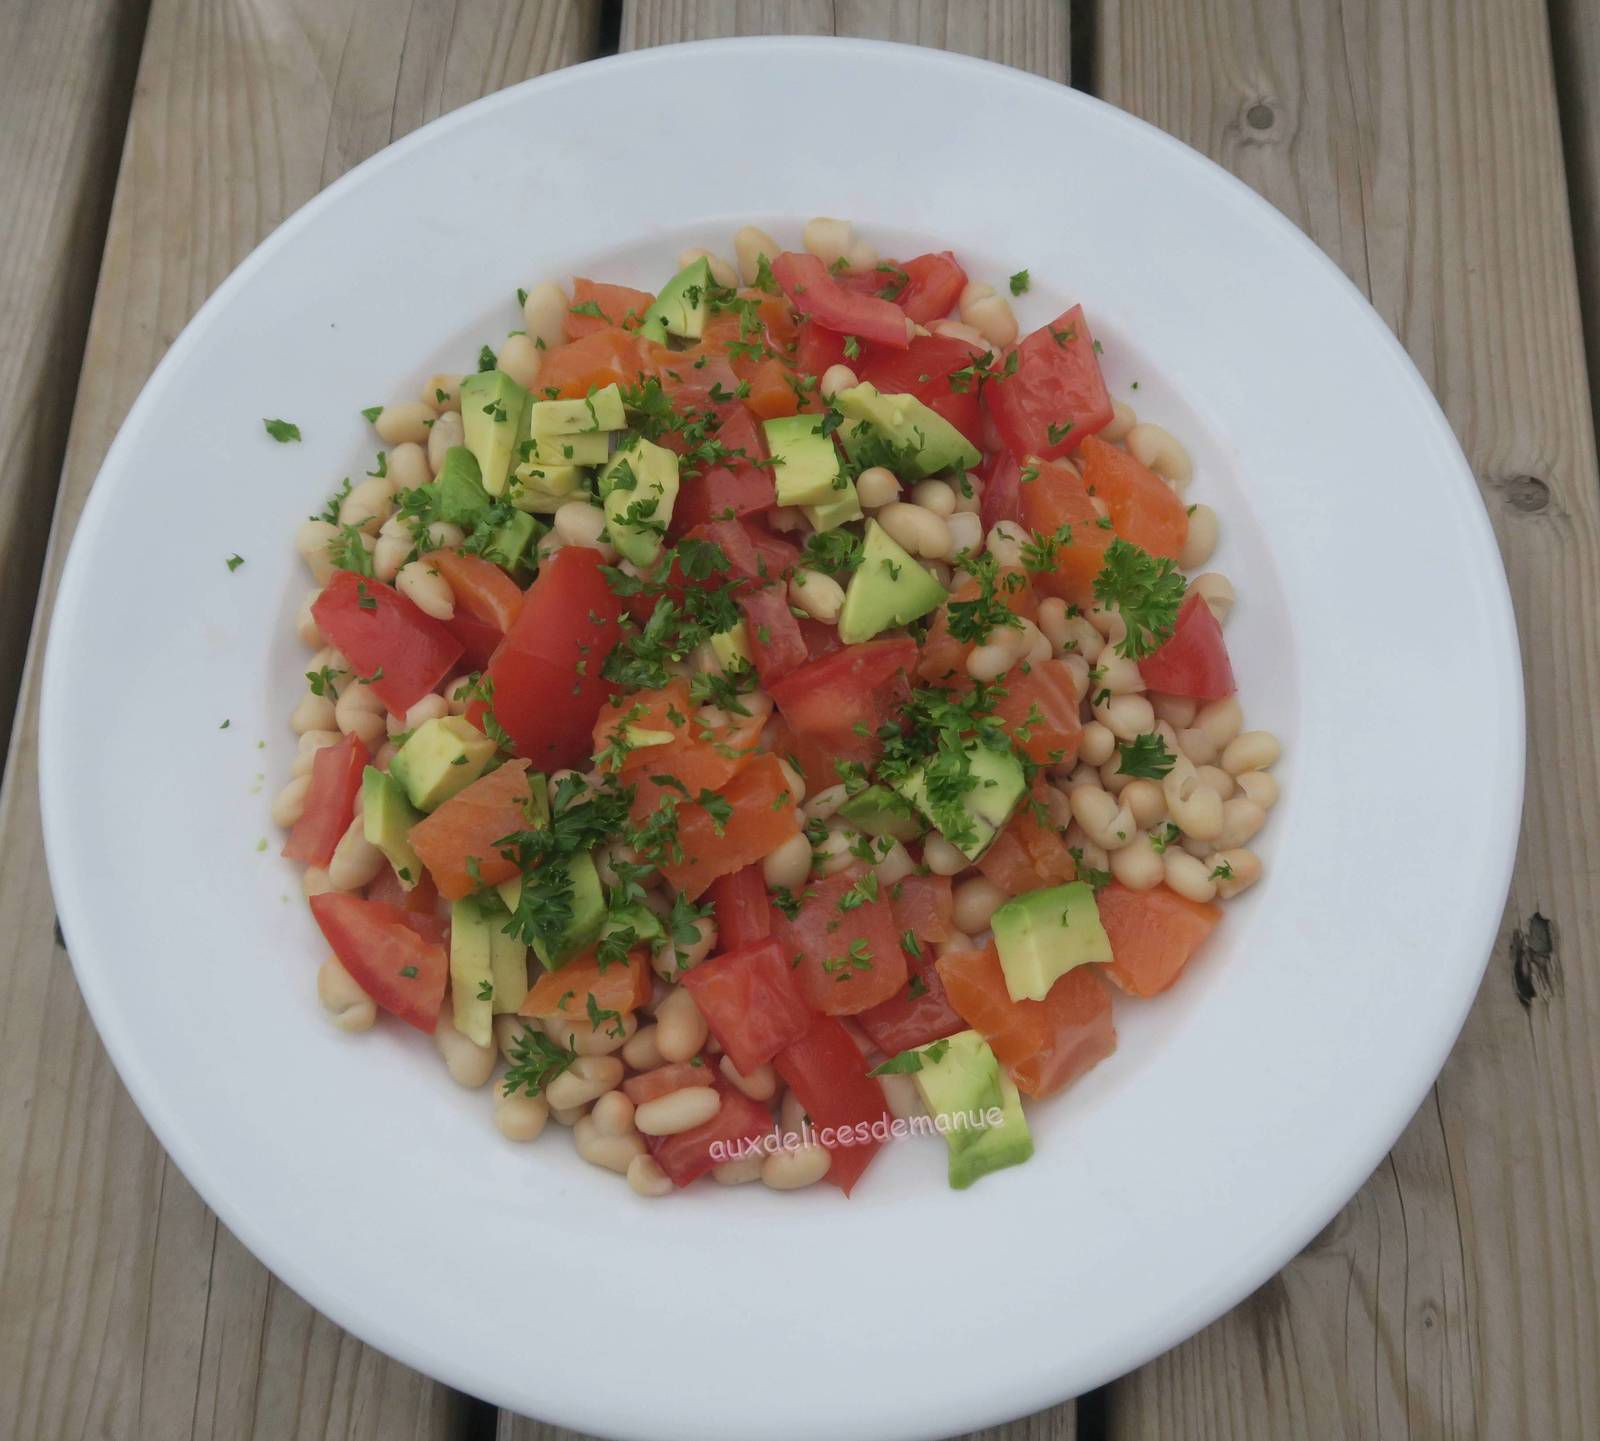 salade,haricots blancs,repas complet,tomate,avocat